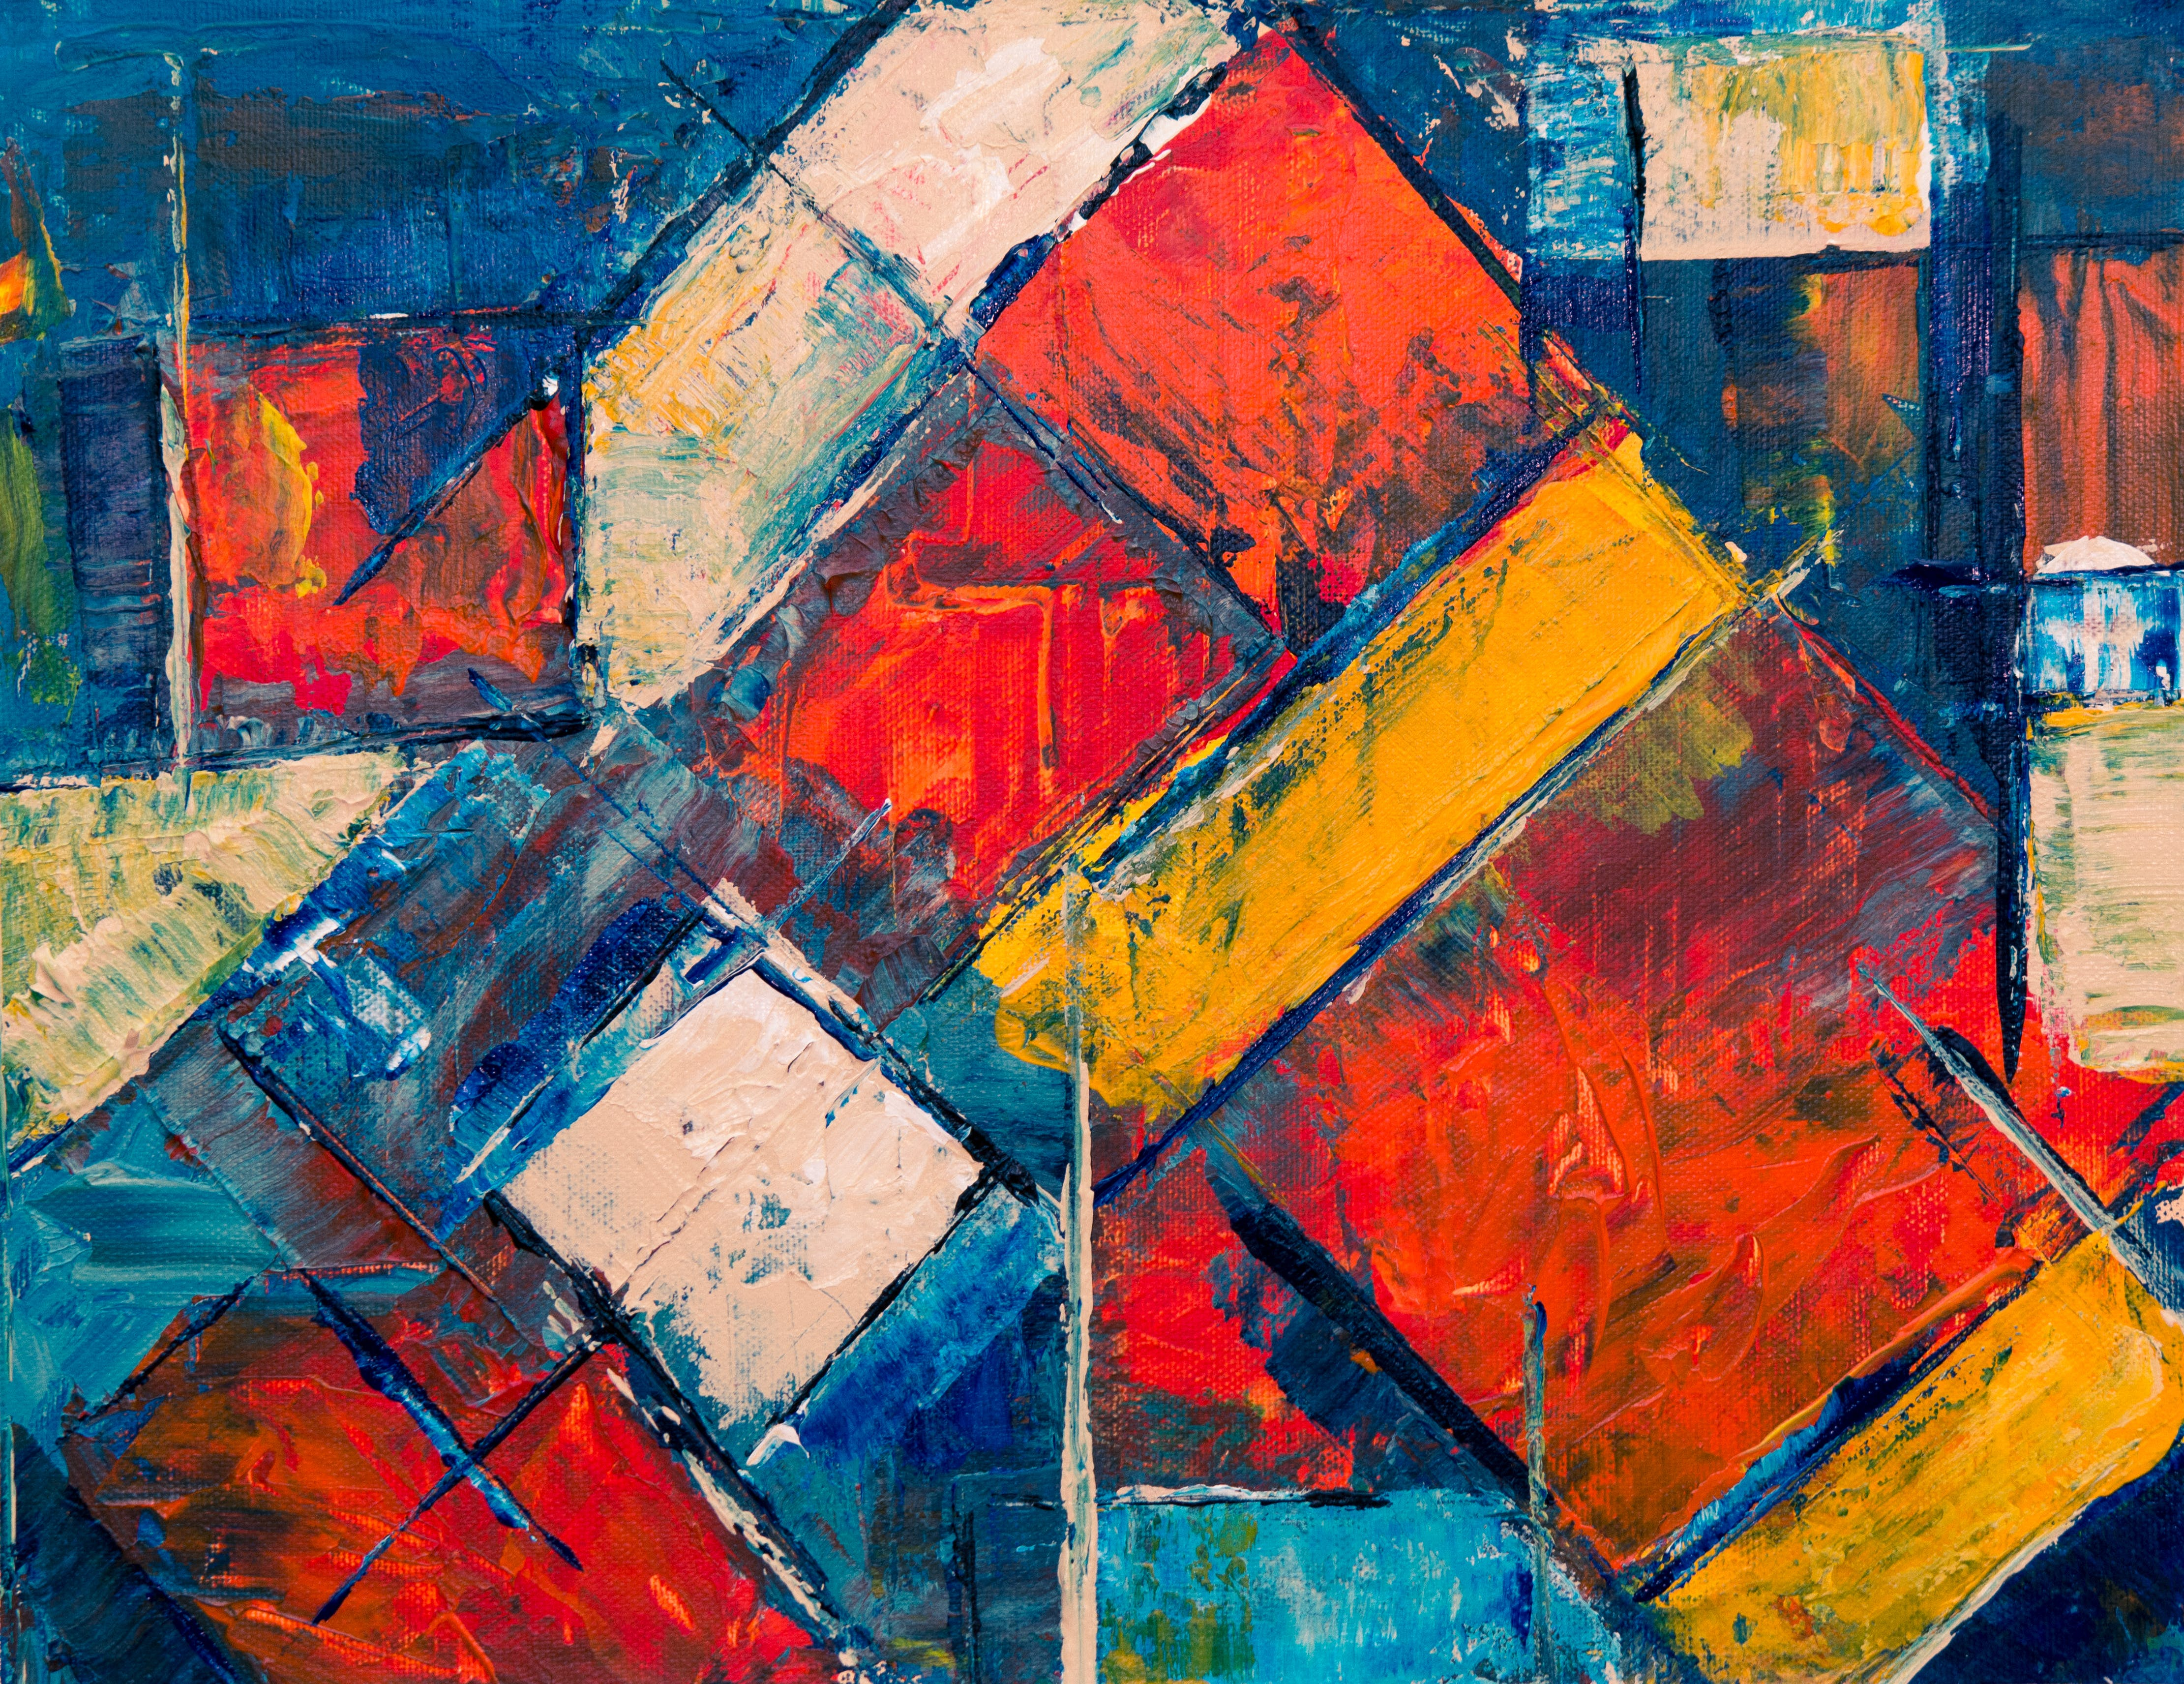 Blue and Multicolored Abstract Painting